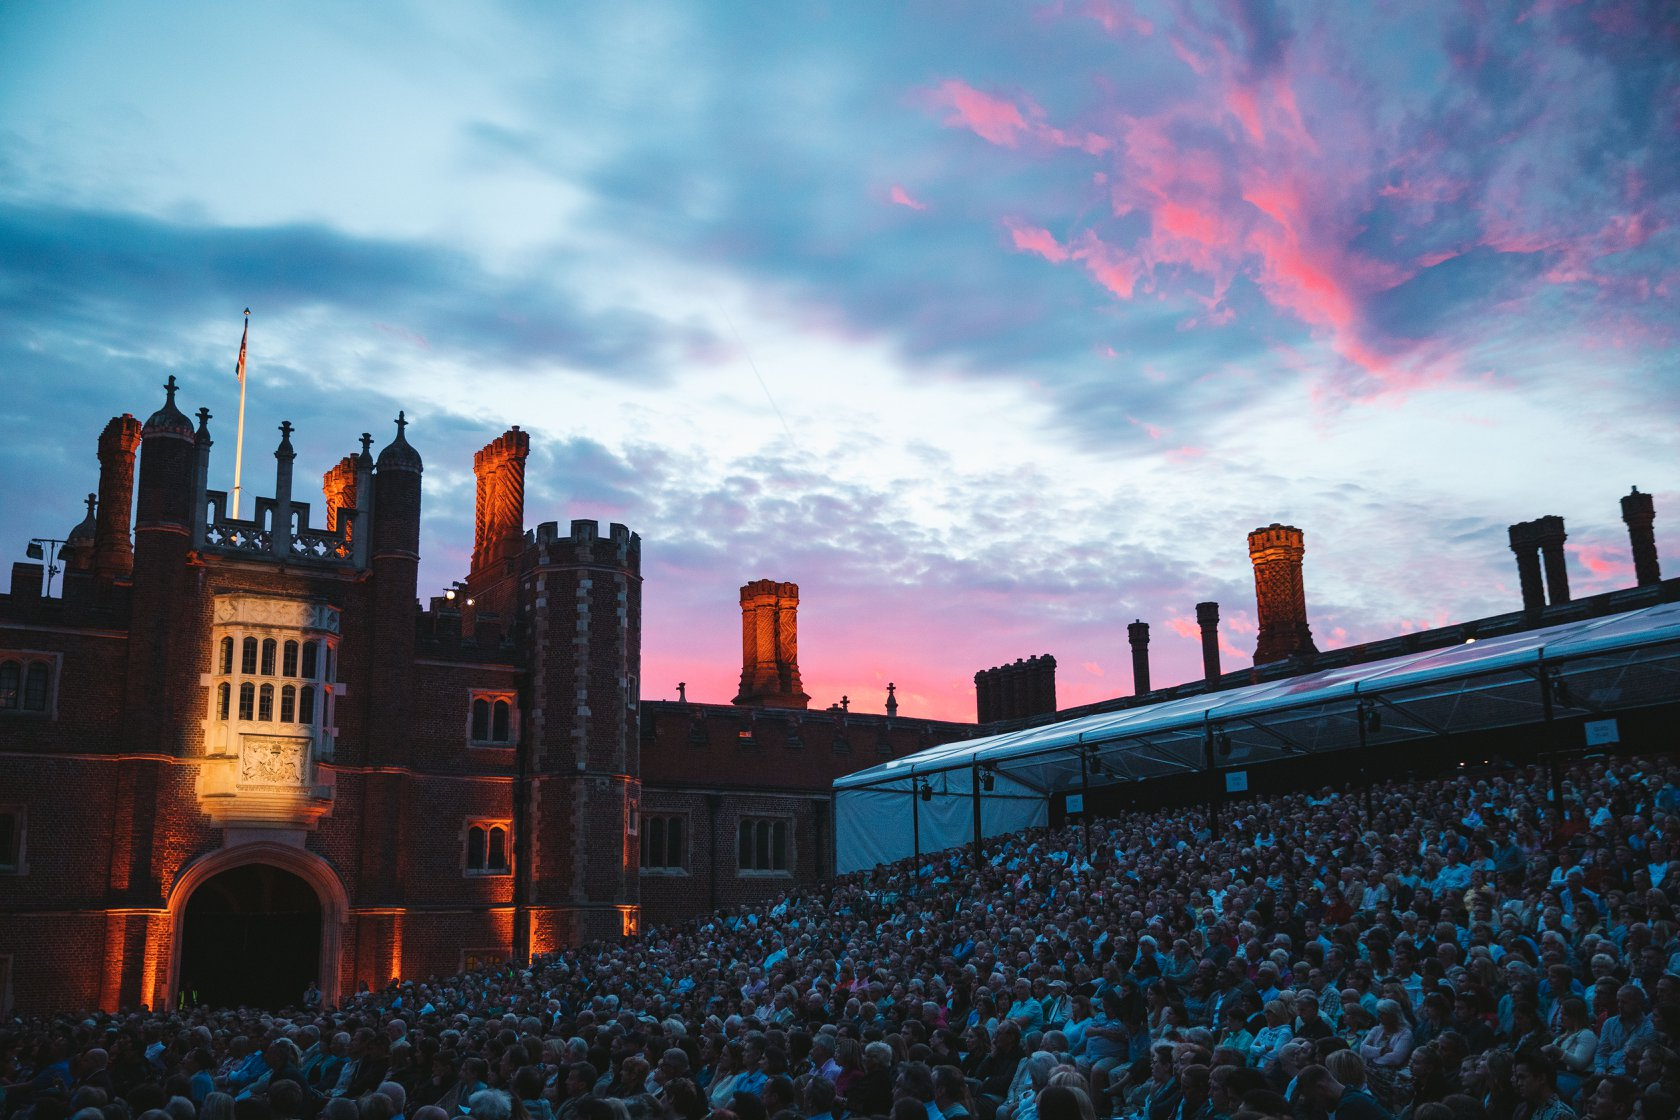 Hampton Court sunsets are like no other. Happy Friday everyone!